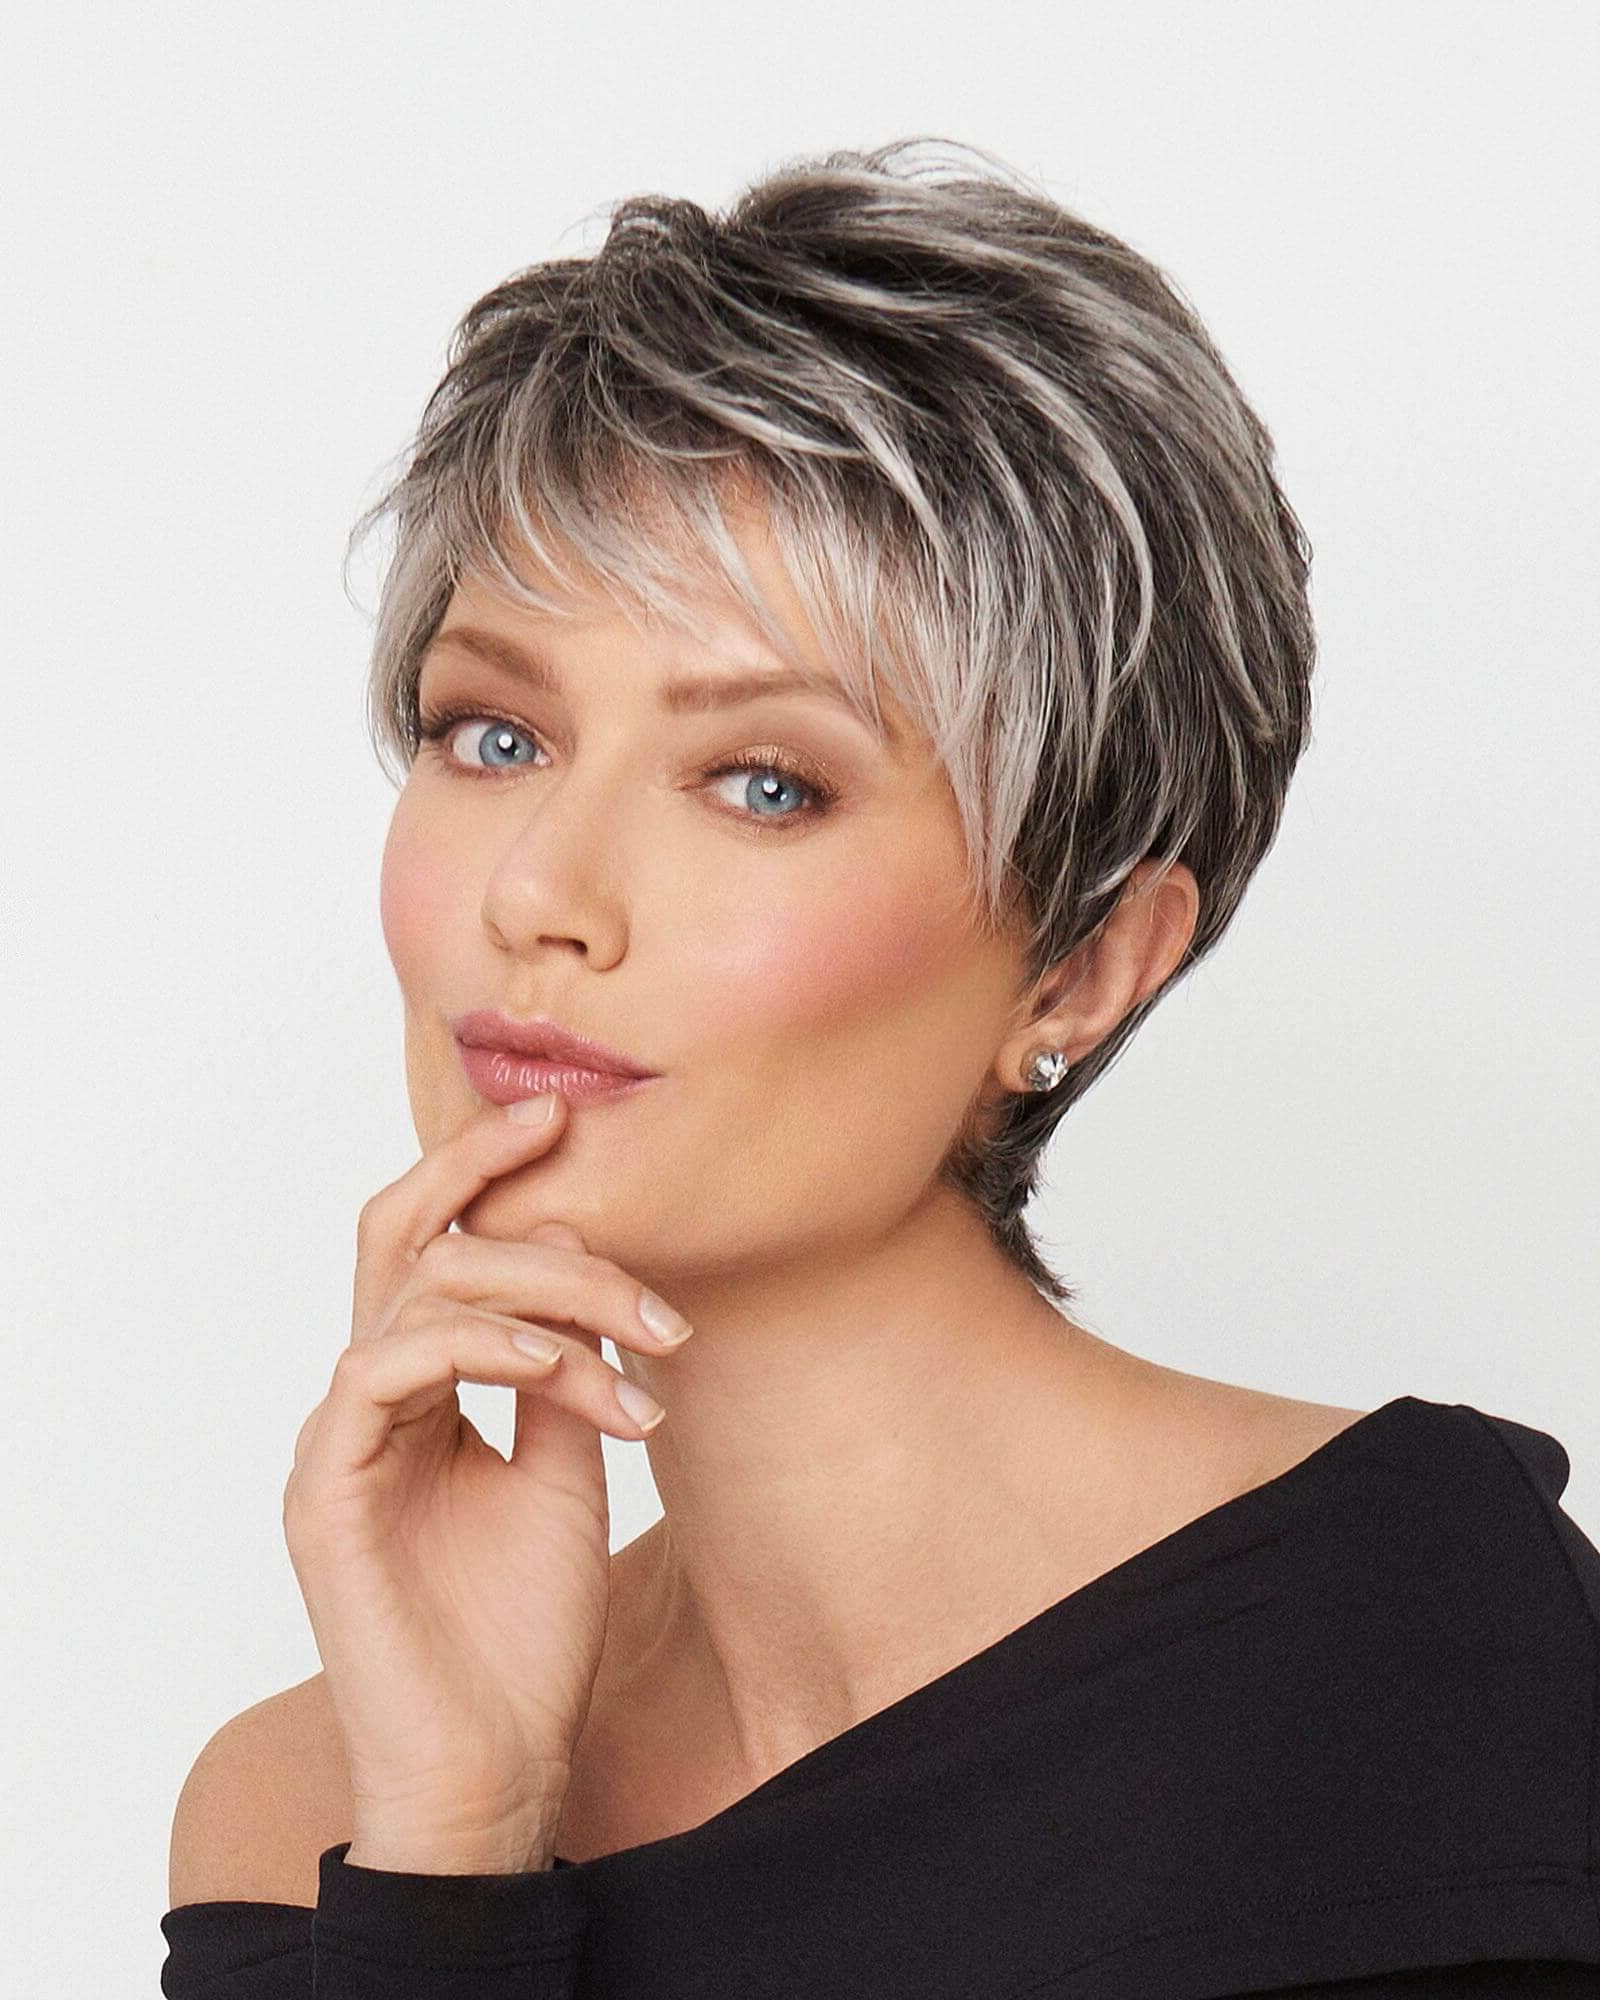 50 Pixie Haircuts You'll See Trending In 2019 Pertaining To Highlighted Pixie Hairstyles (View 14 of 20)